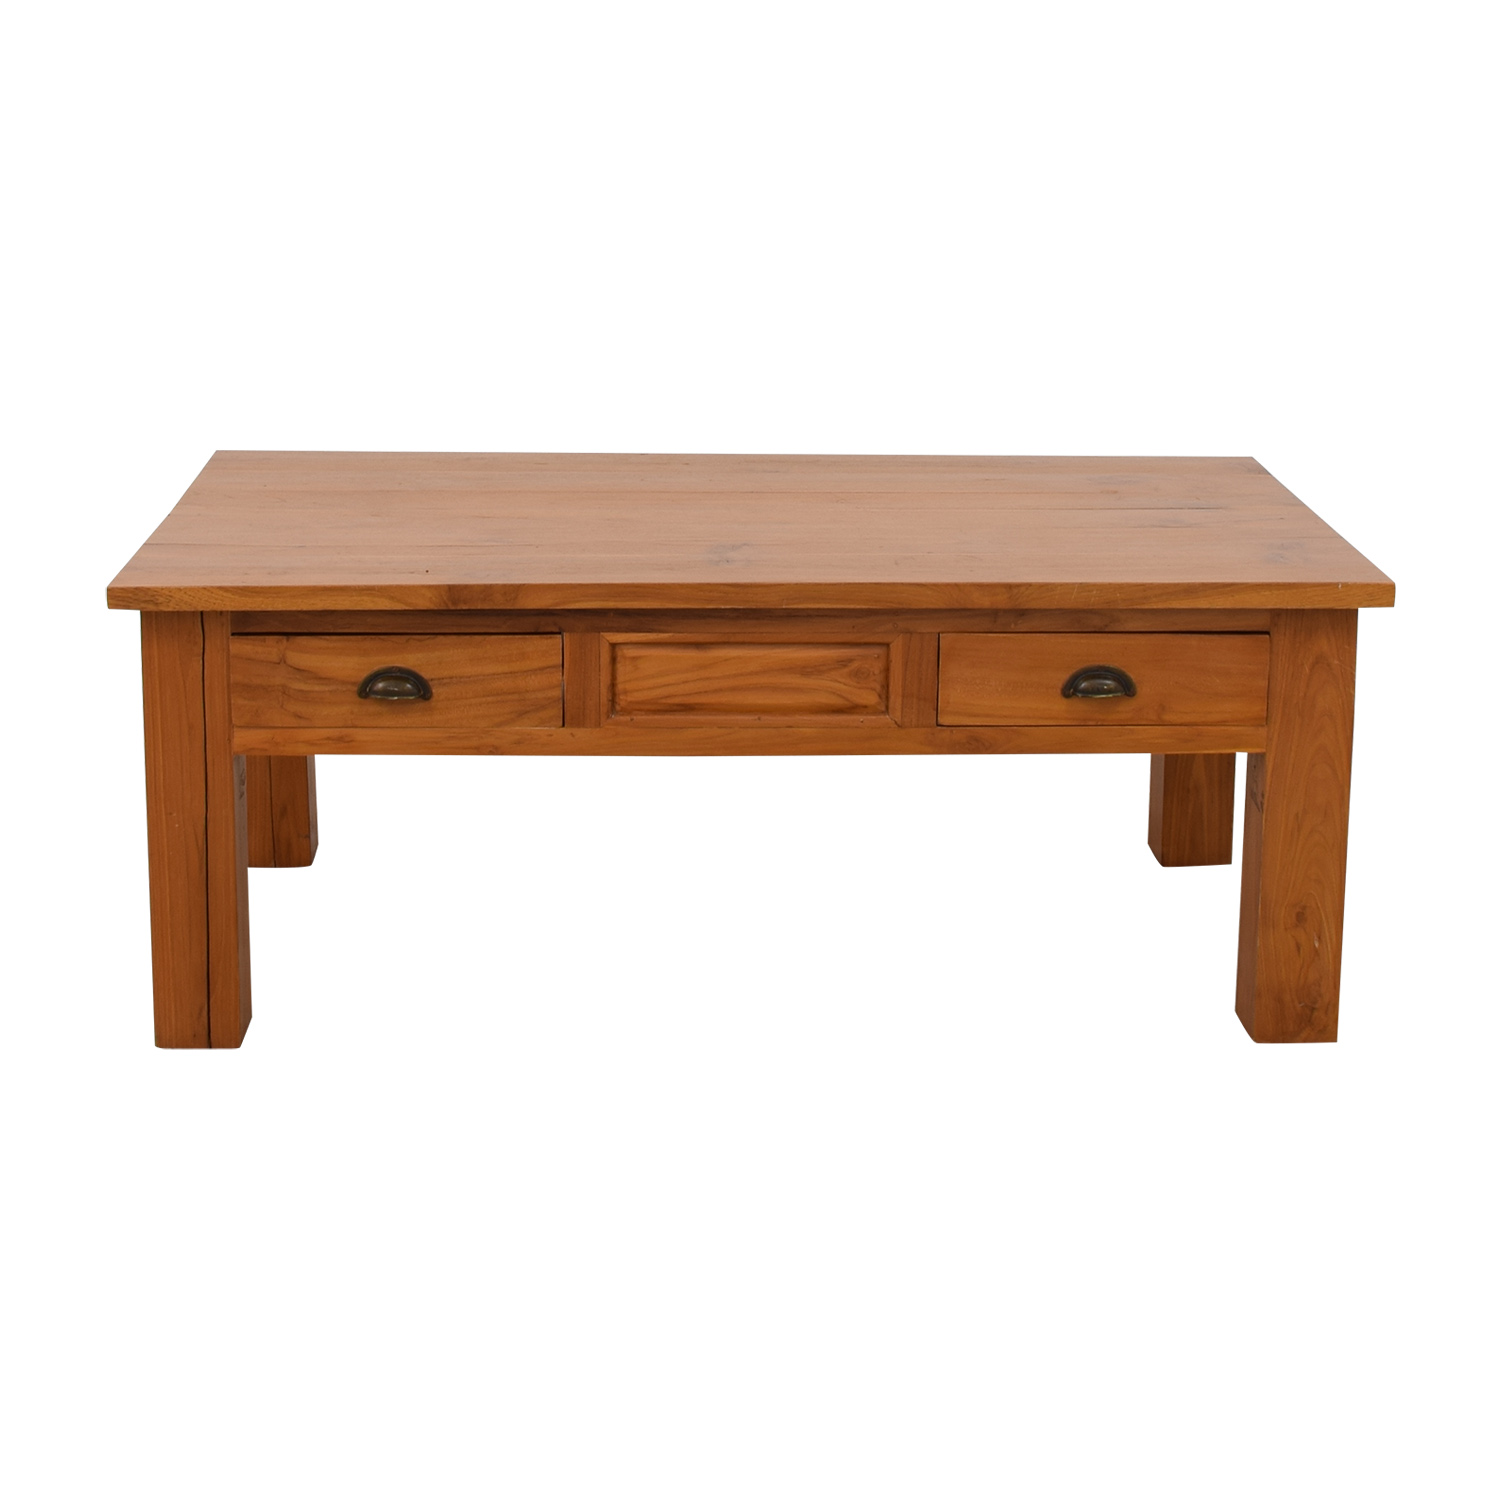 59% OFF Balinese Teak Two Drawer Coffee Table Tables